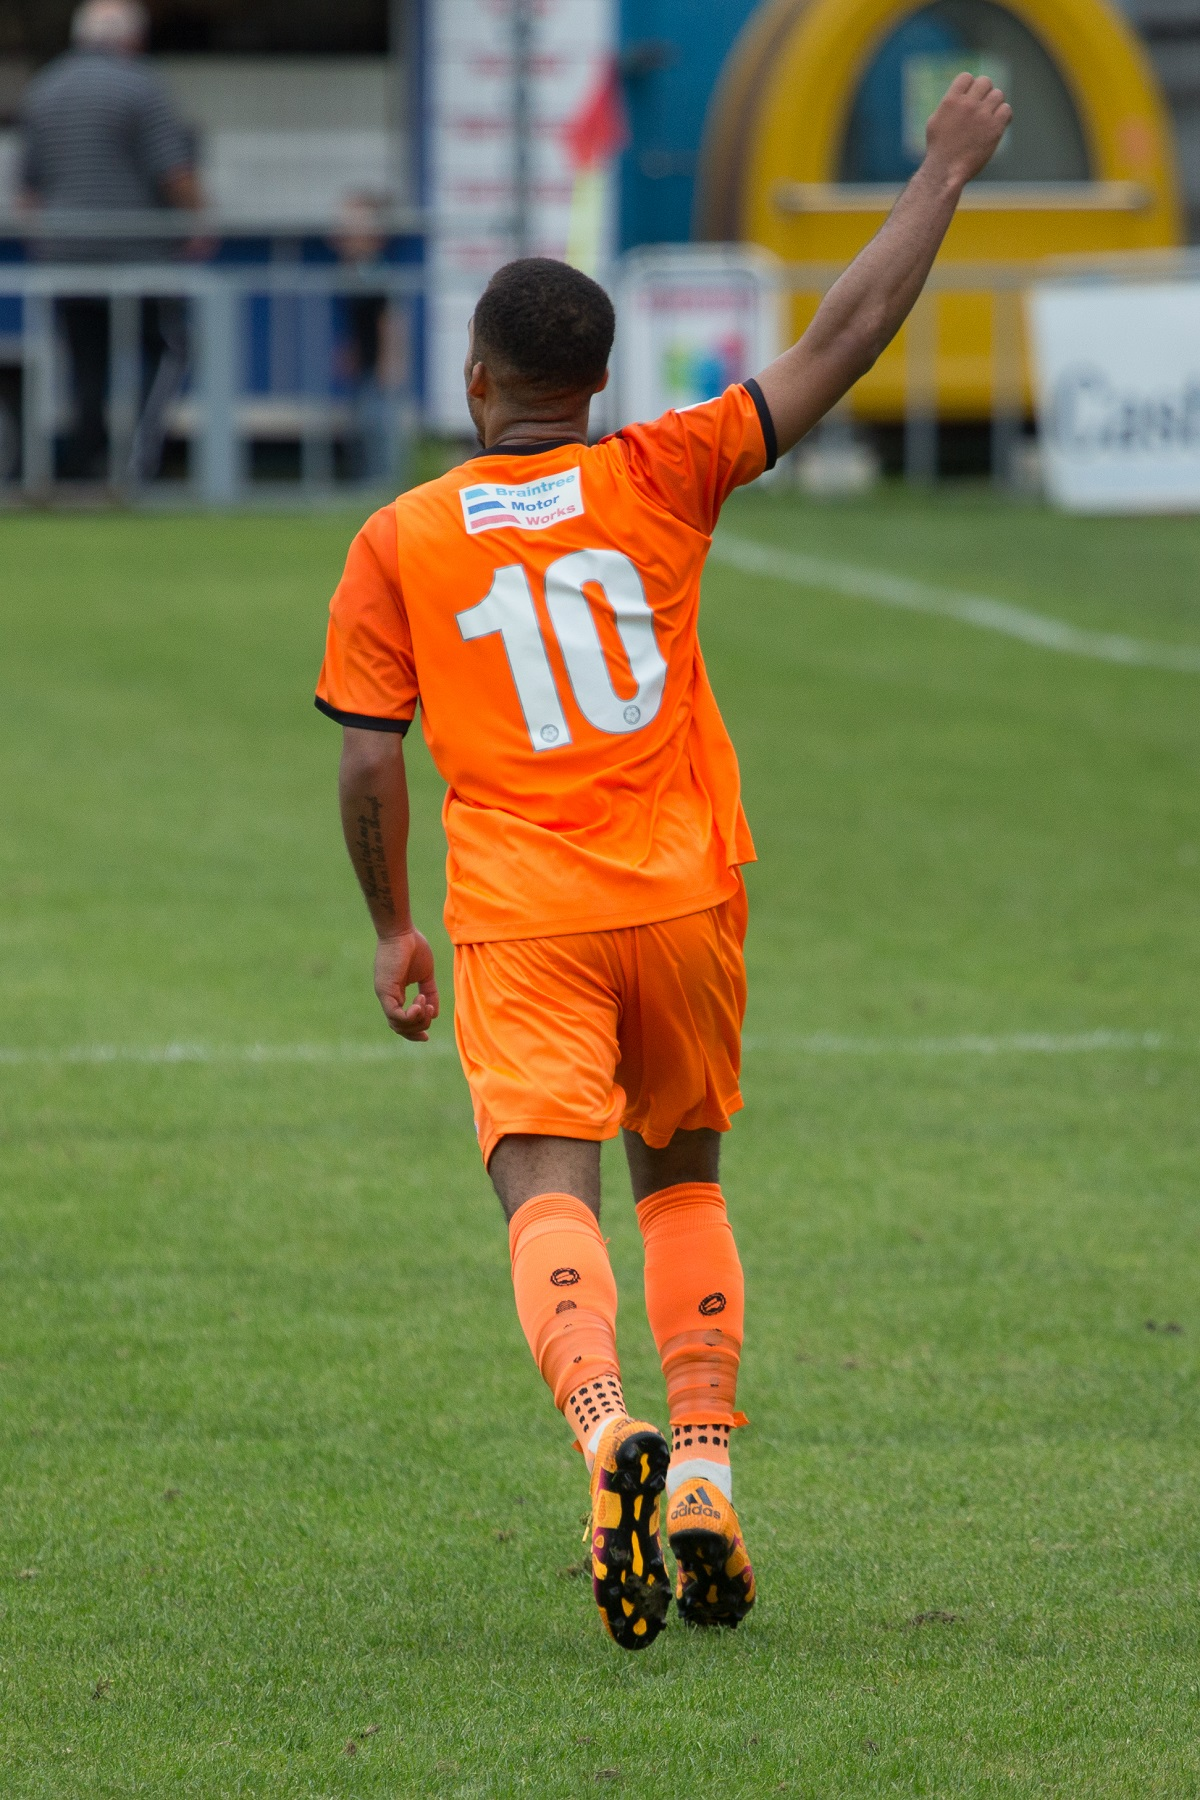 Roman Michael-Percil scored Braintree's equaliser late in the game at Chelmsford. Picture: Chris Jarvis